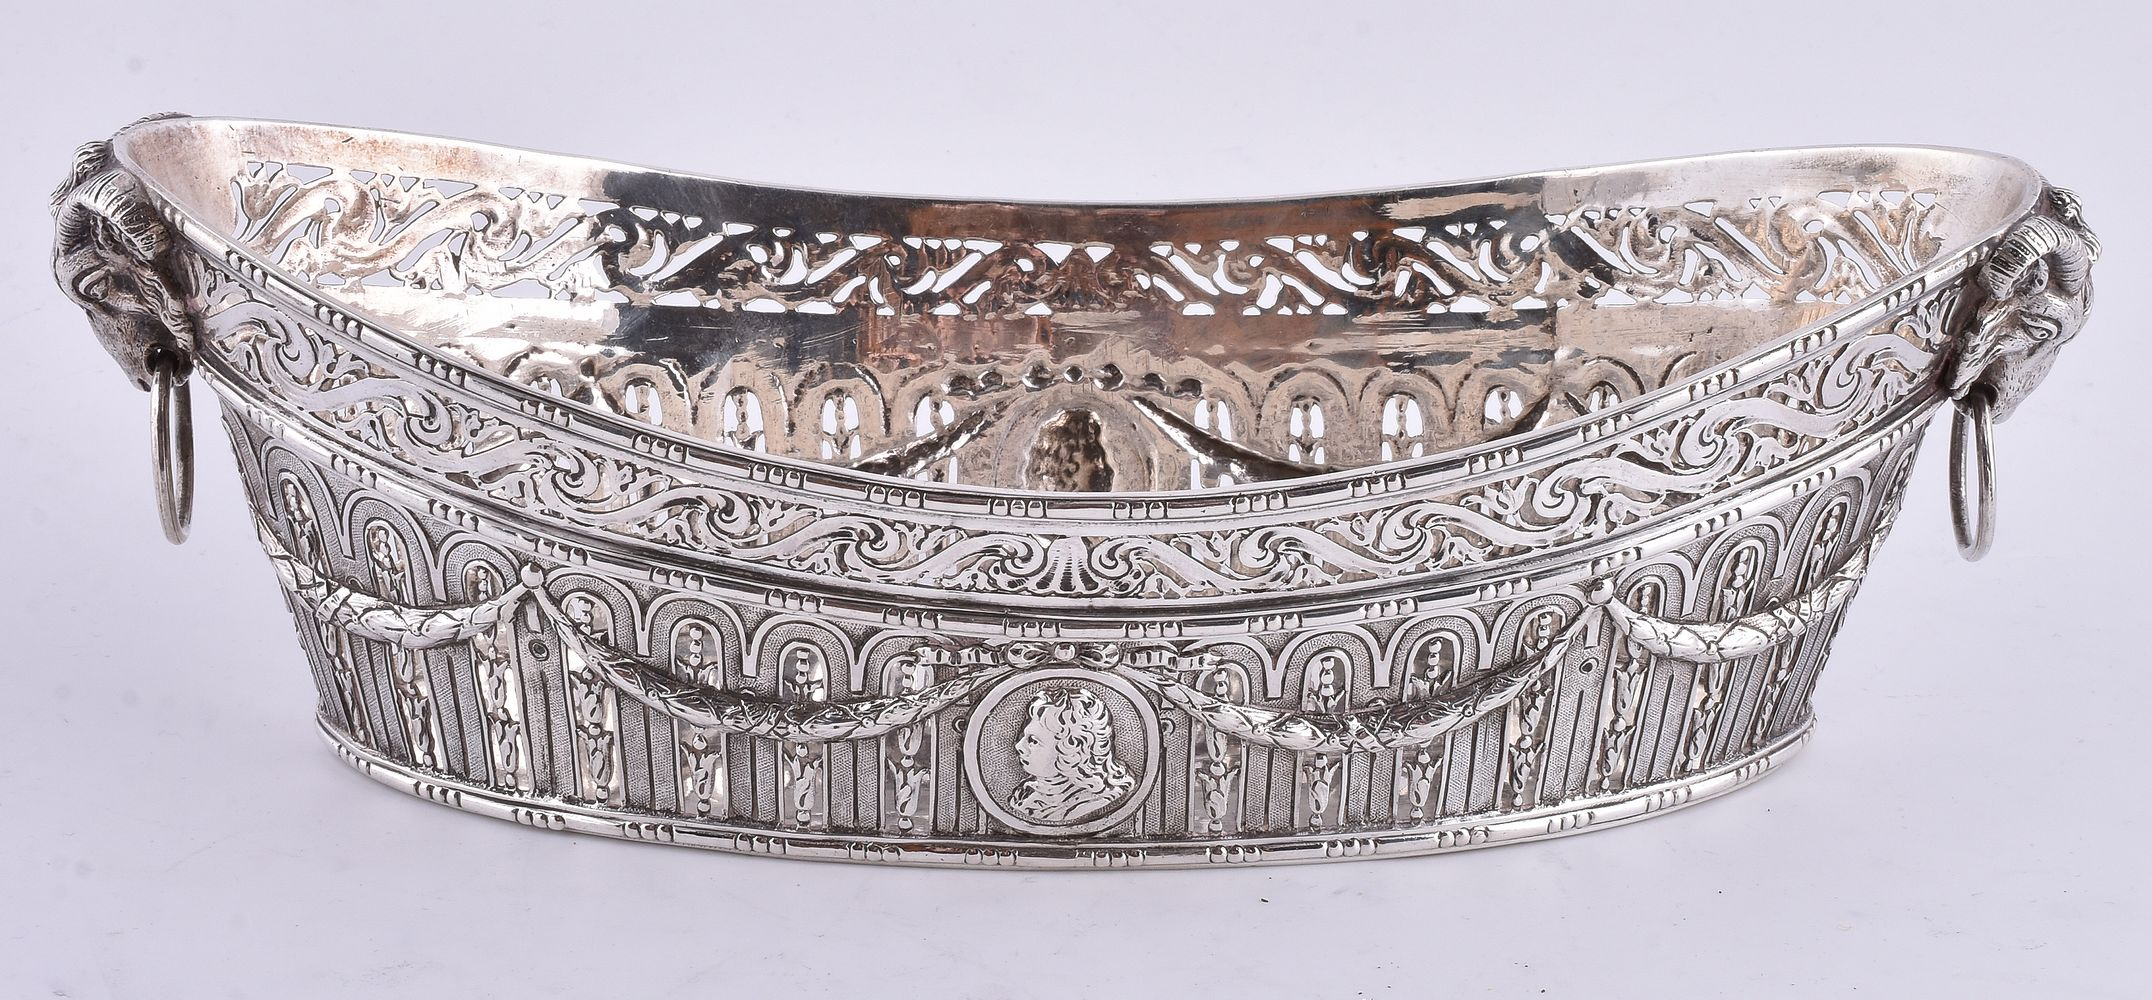 Lot 684 - A late 19th century silver navette shaped basket by Wolf & Knell